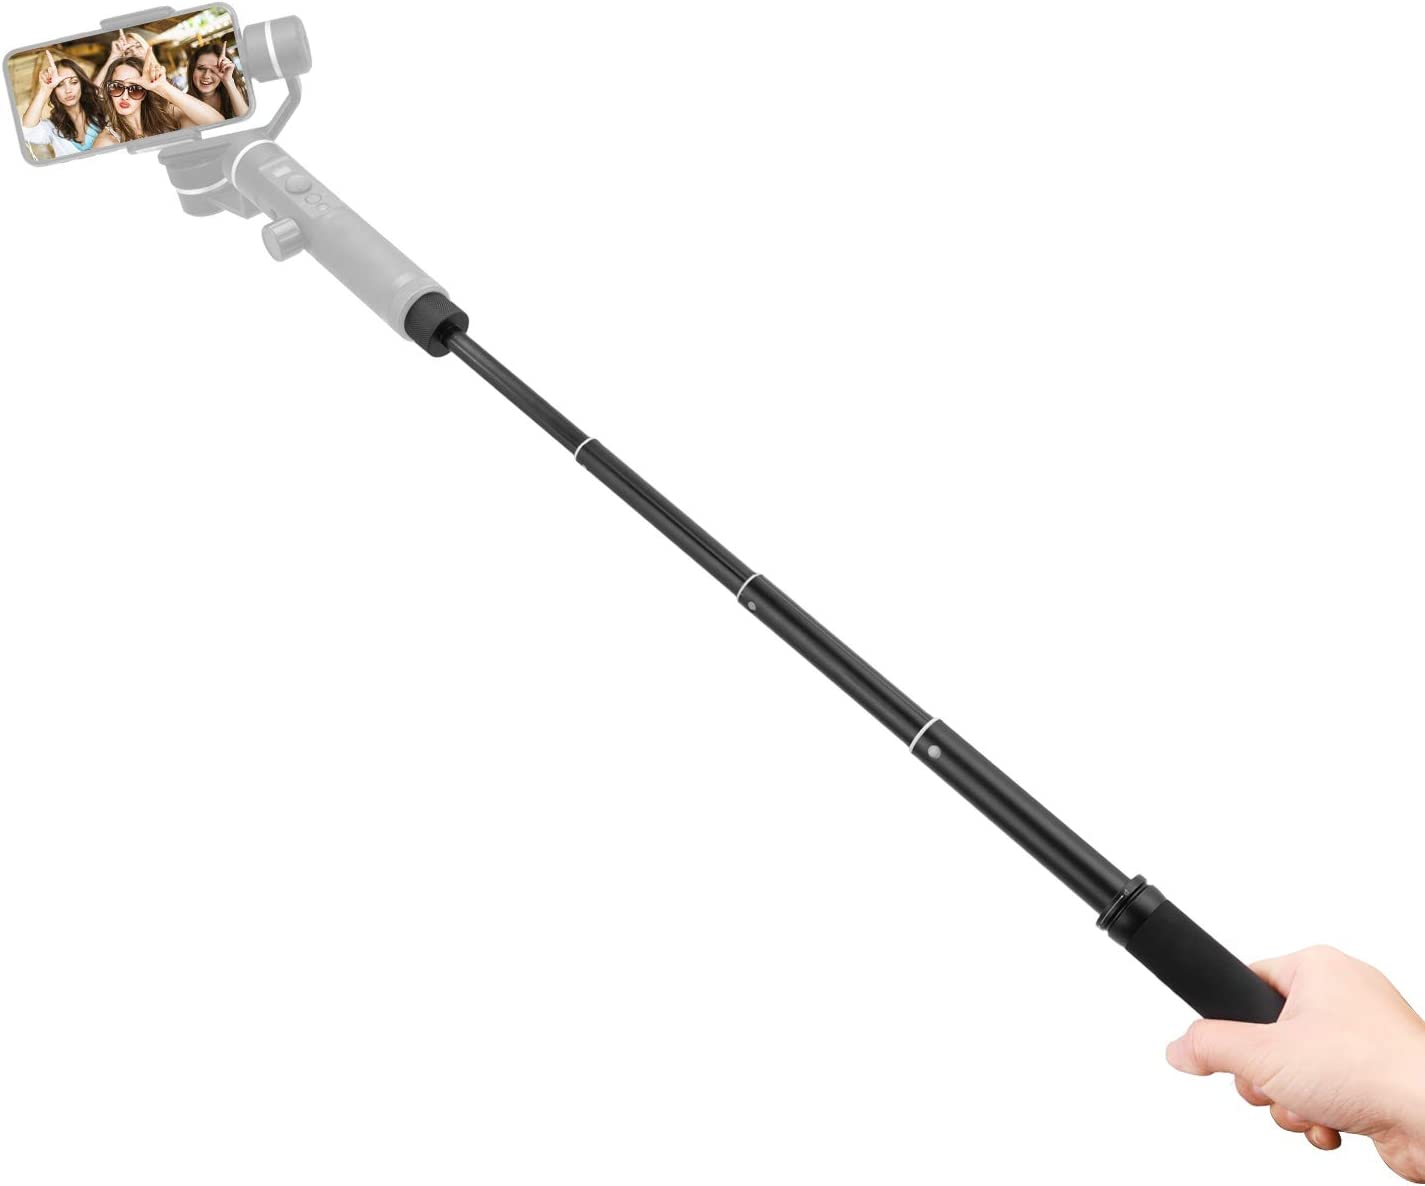 FeiyuTech V3 Handheld Stabilizer Extension Pole Stick Rod Bar with 1//4 Inch Screw Mount Max.52.8cm Long Compatible with Feiyu G6//G6 Plus//SPG2//SPG//WG2//WG2X//G5GS Gimbal